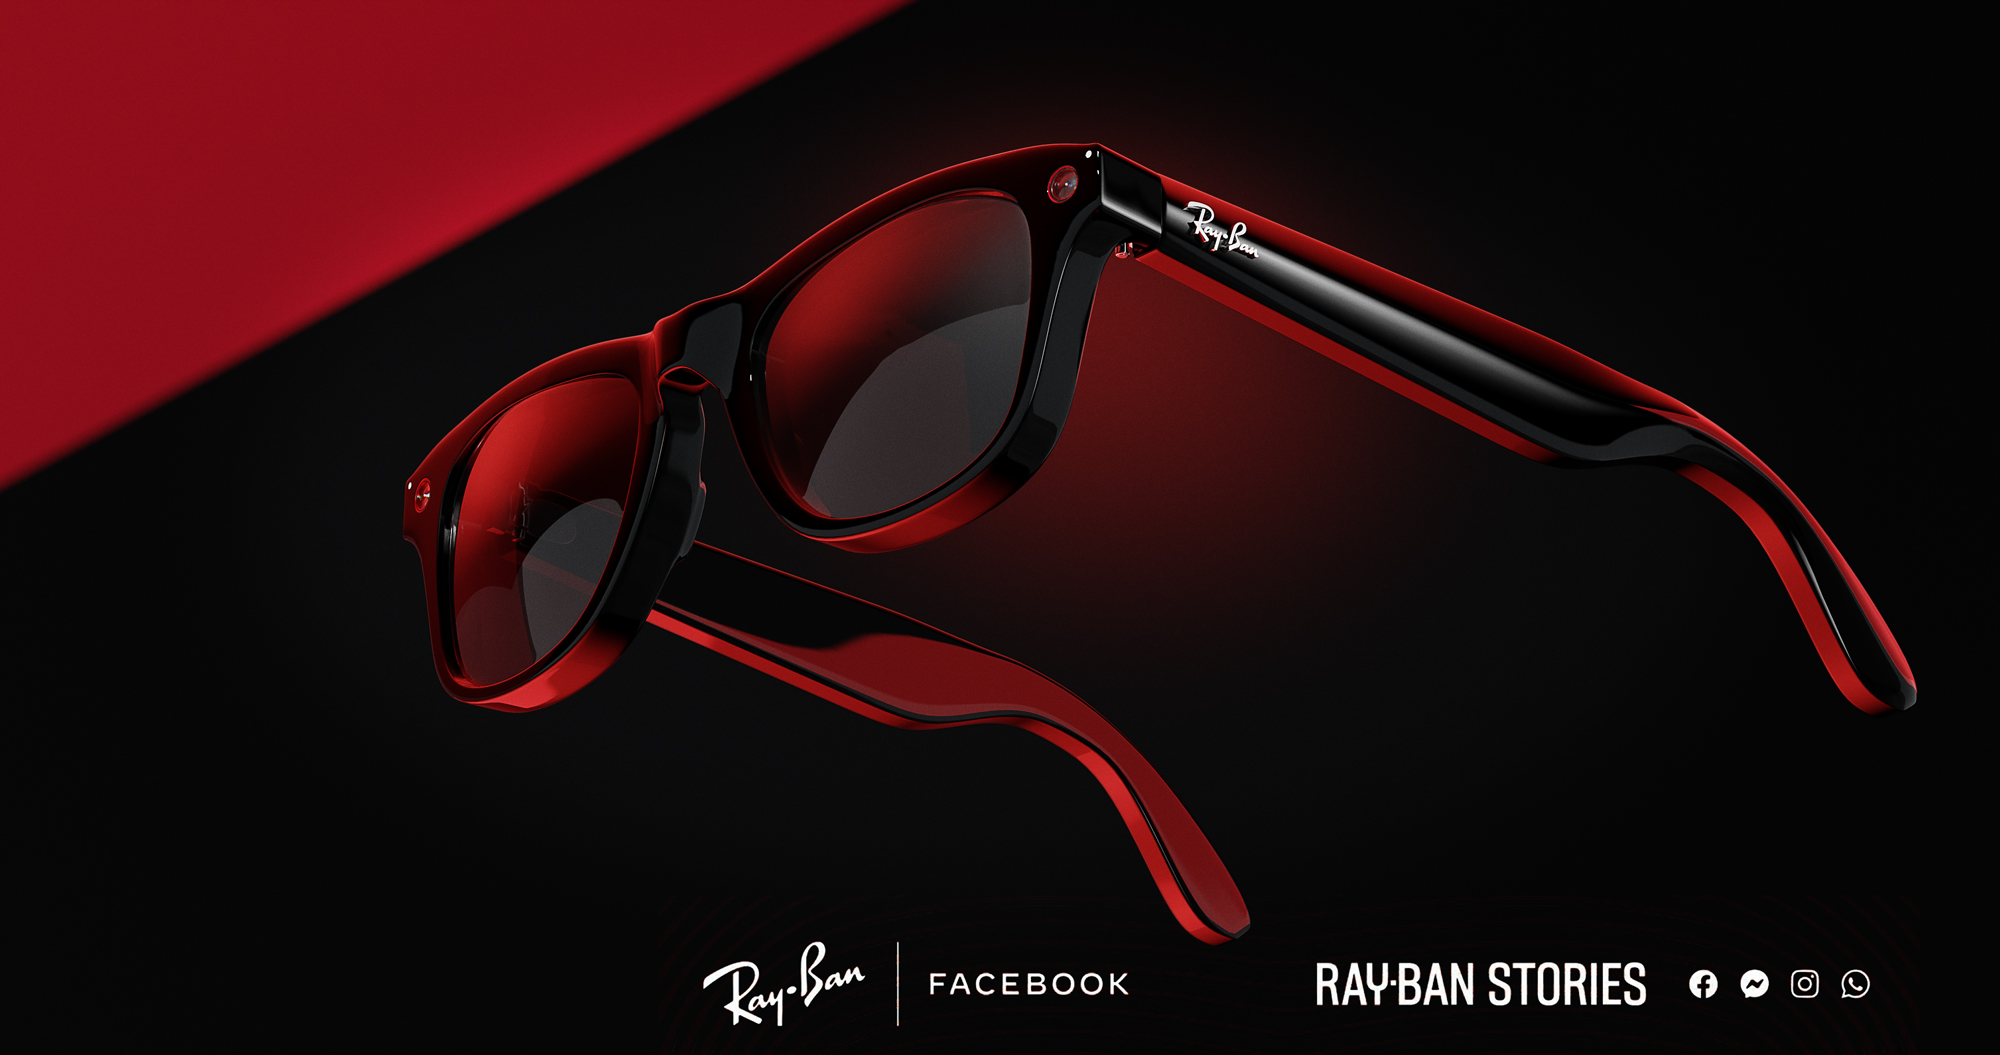 CGI-Product-Photography-Rayban-Stories-Facebook-Glasses in front of black and red background with red rim lights